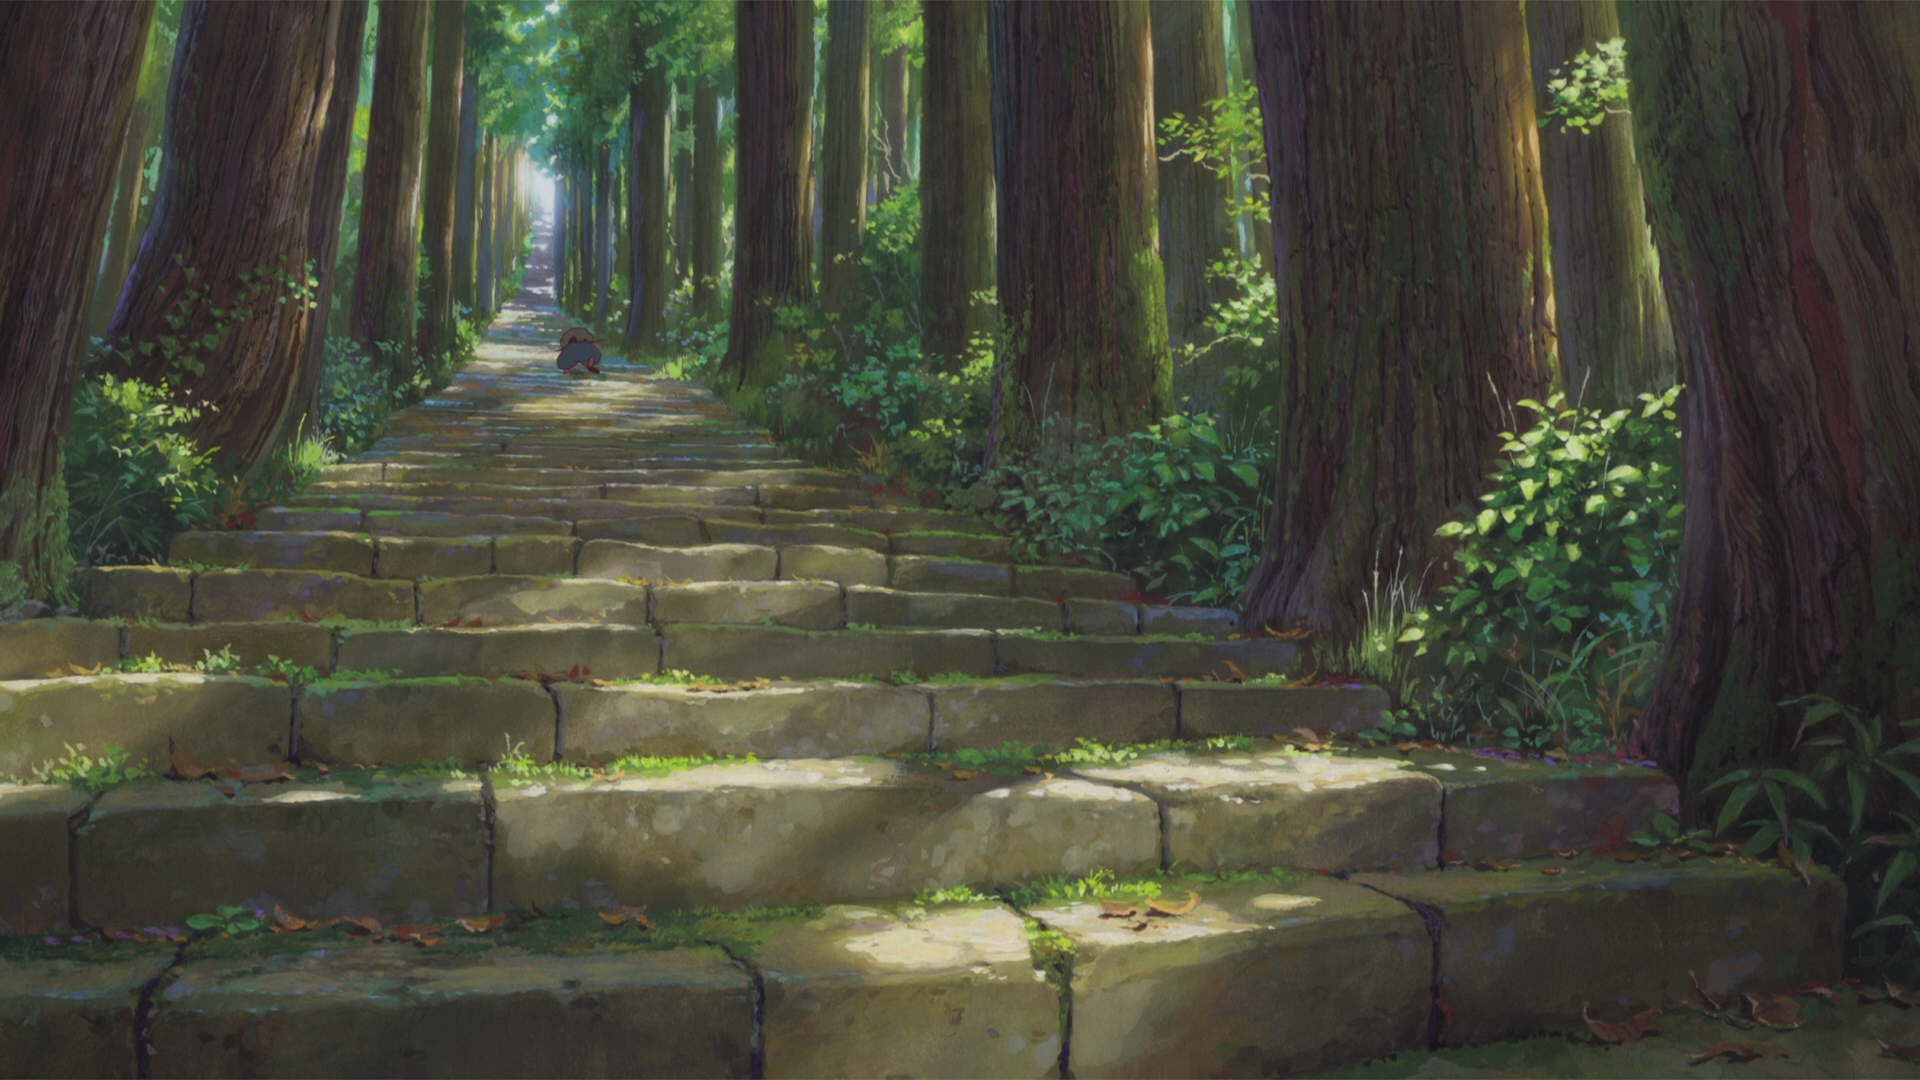 Climb the forests stairs HD Wallpaper Background Image 1920x1080